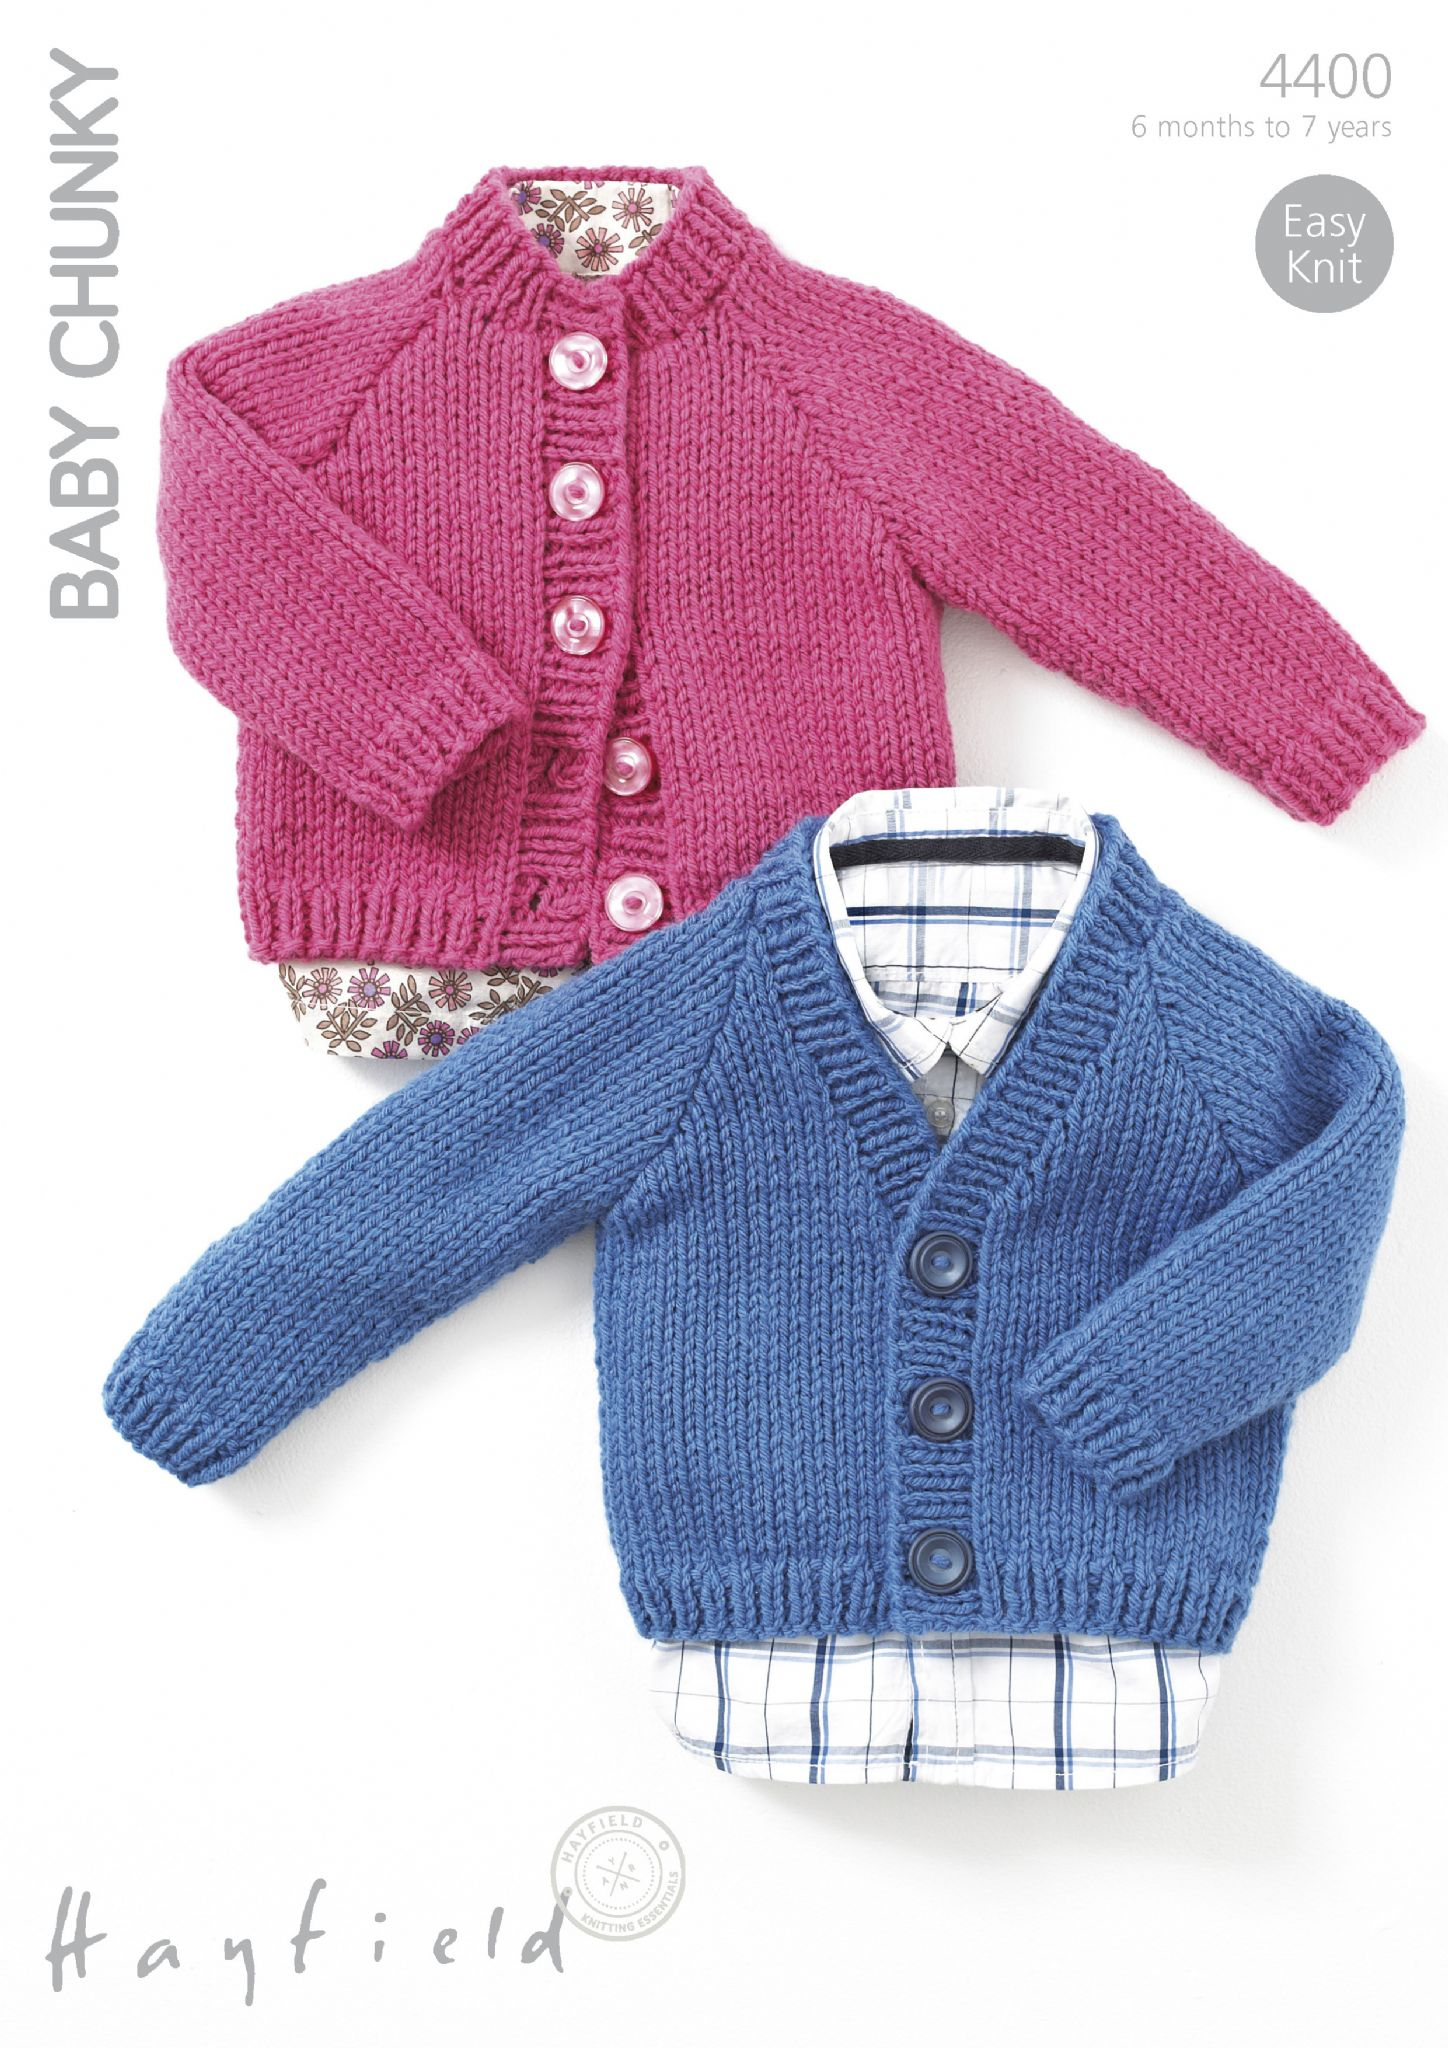 4400 - HAYFIELD BABY CHUNKY CARDIGAN KNITTING PATTERN - TO ...